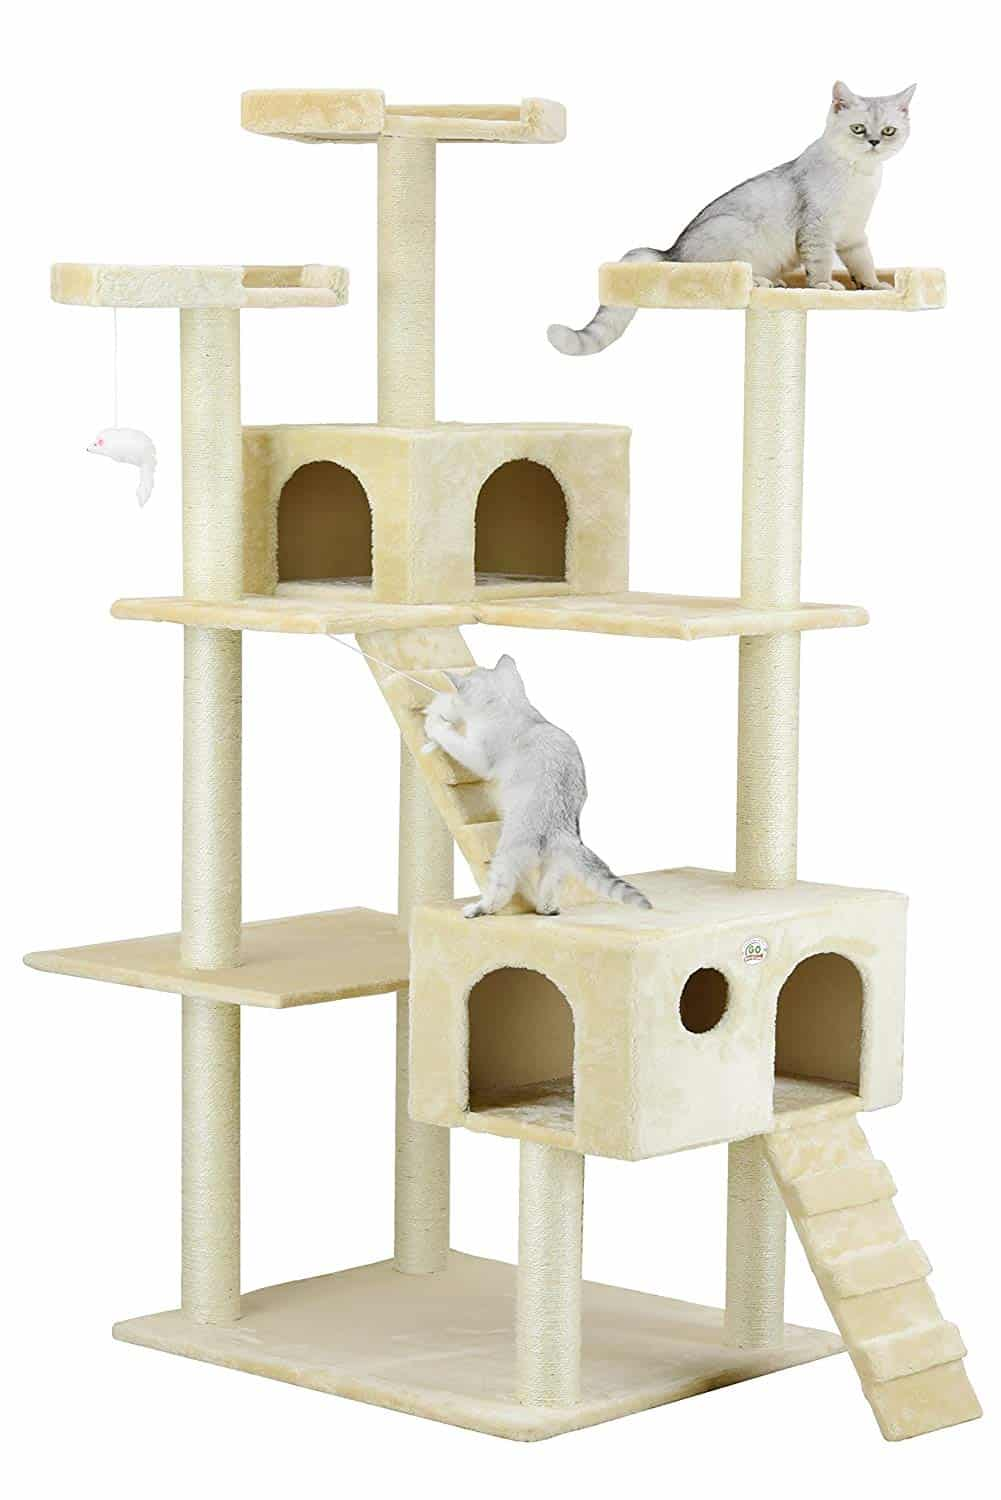 5. Go Pet Club Cat Tree House